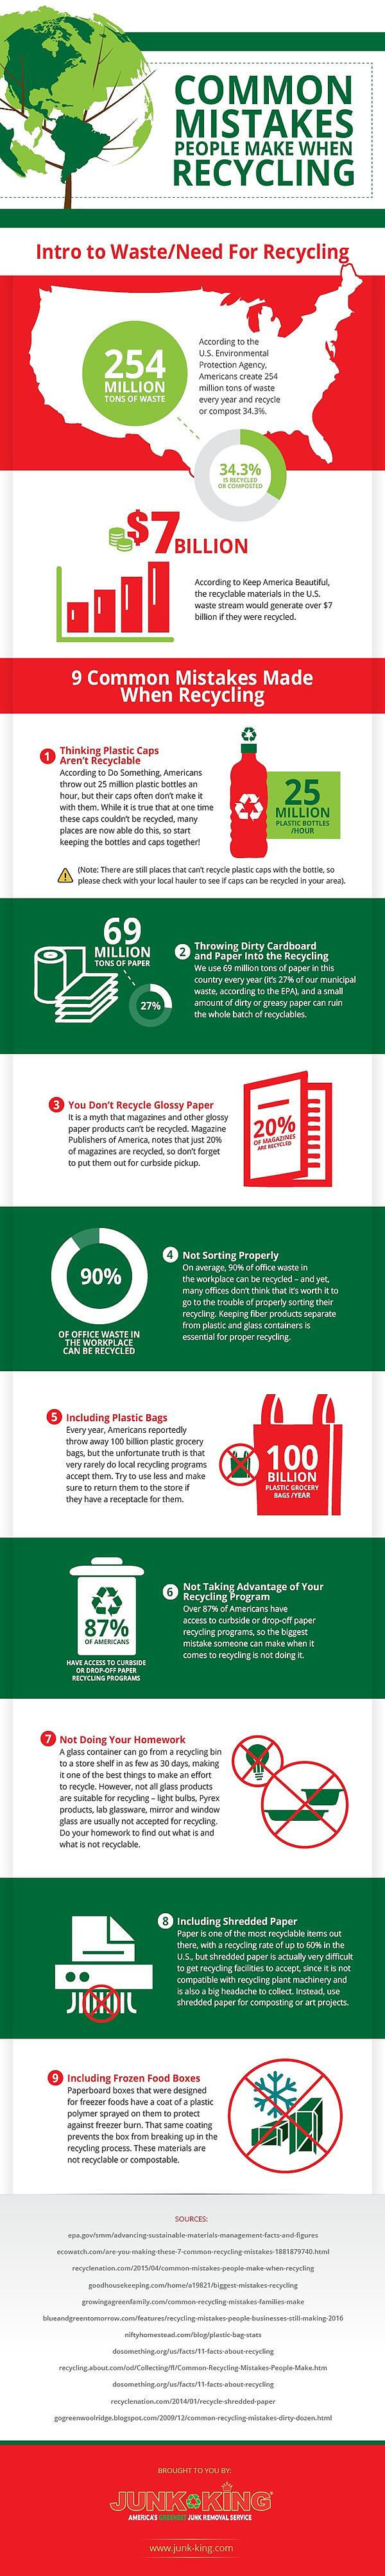 Common_Mistakes_People_Make_When_Recycling_Infographic.jpg